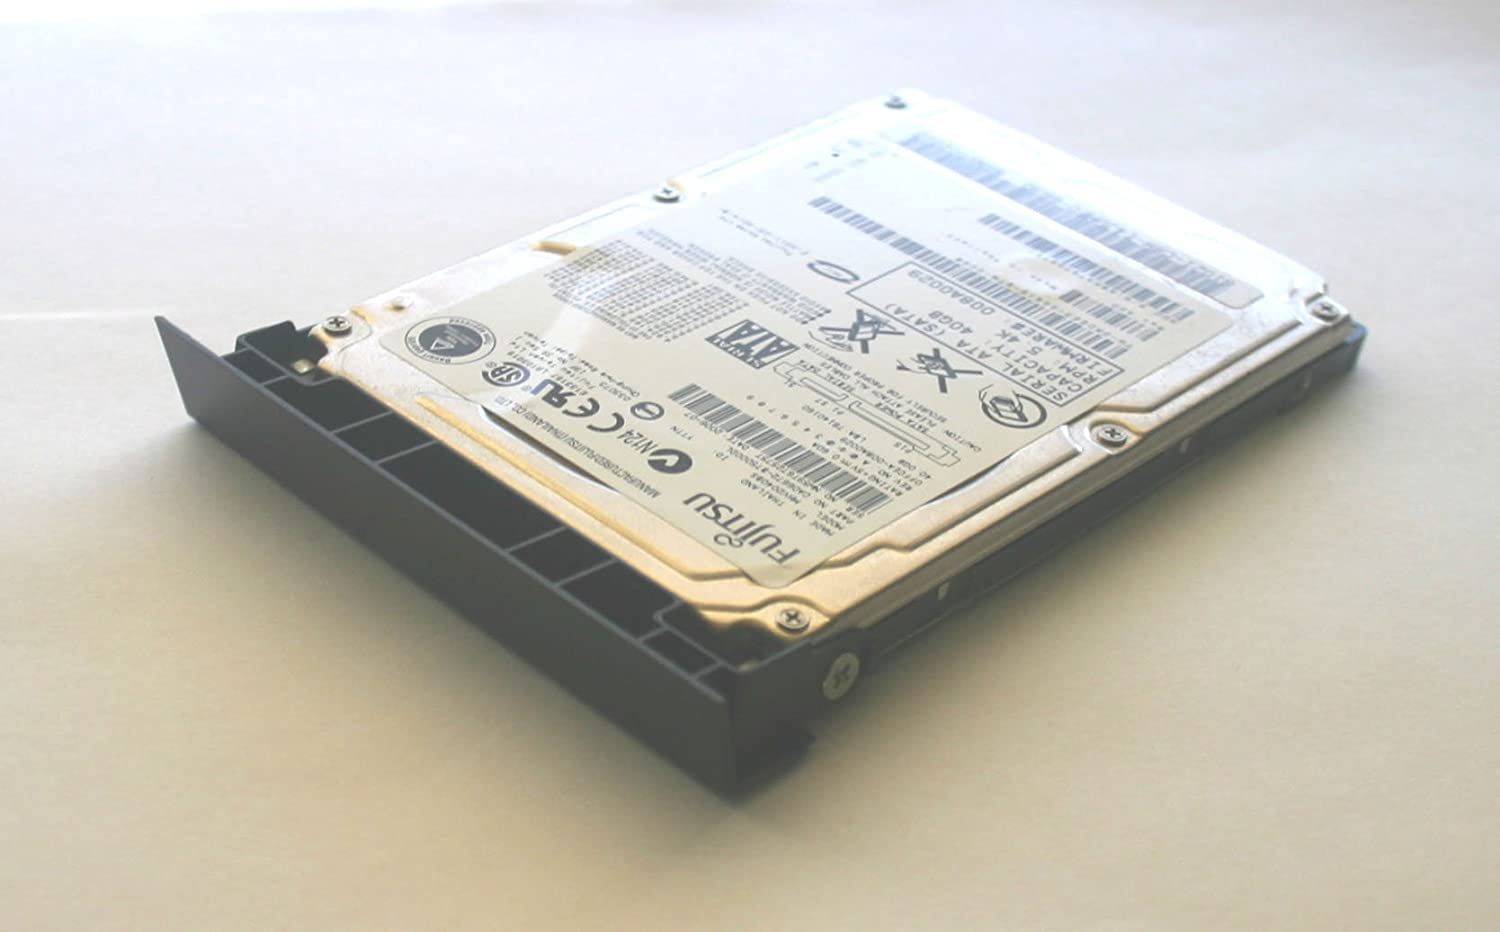 "500GB 2.5"" SATA Laptop Hard Drive with Caddy, Windows 7 Pro 64-Bit and Drivers Installed for The Dell Latitude E6400"